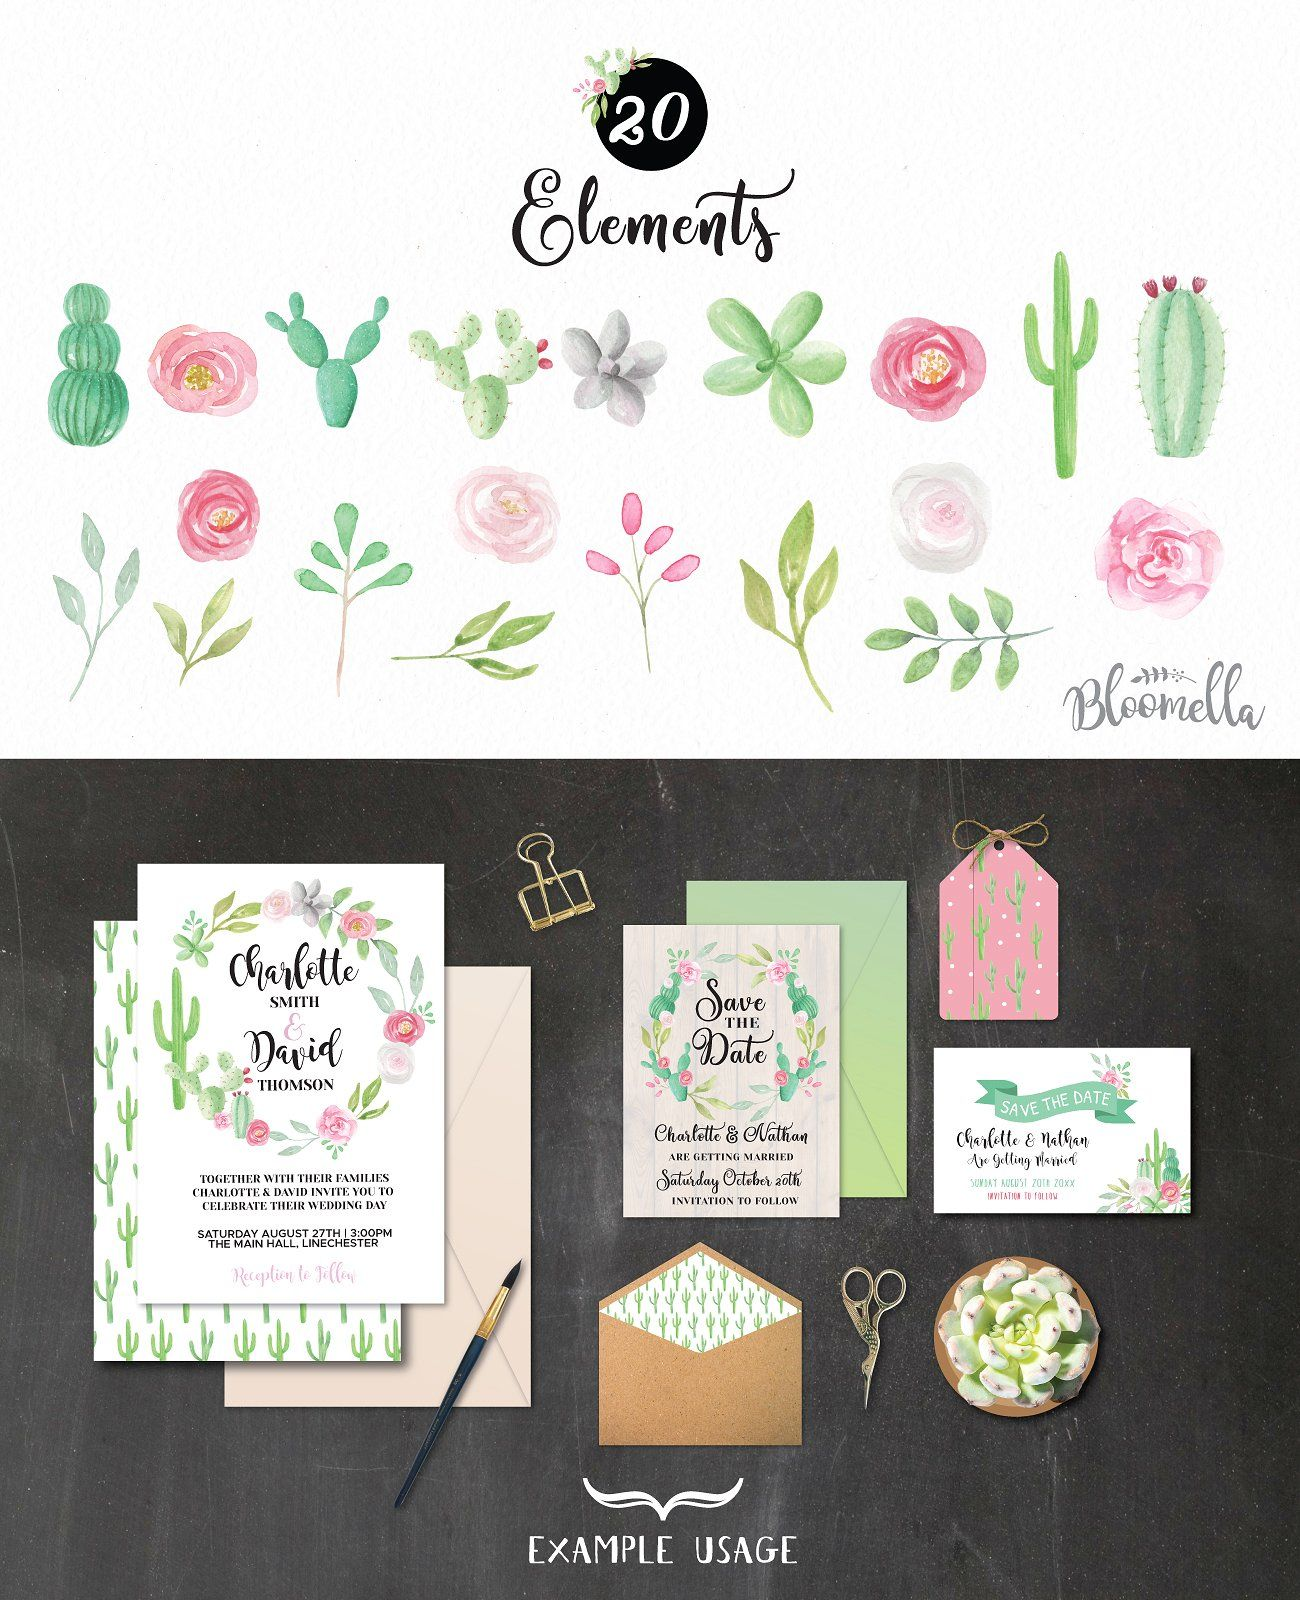 Cactus Wedding Watercolor Elements Px Inches Cm Size